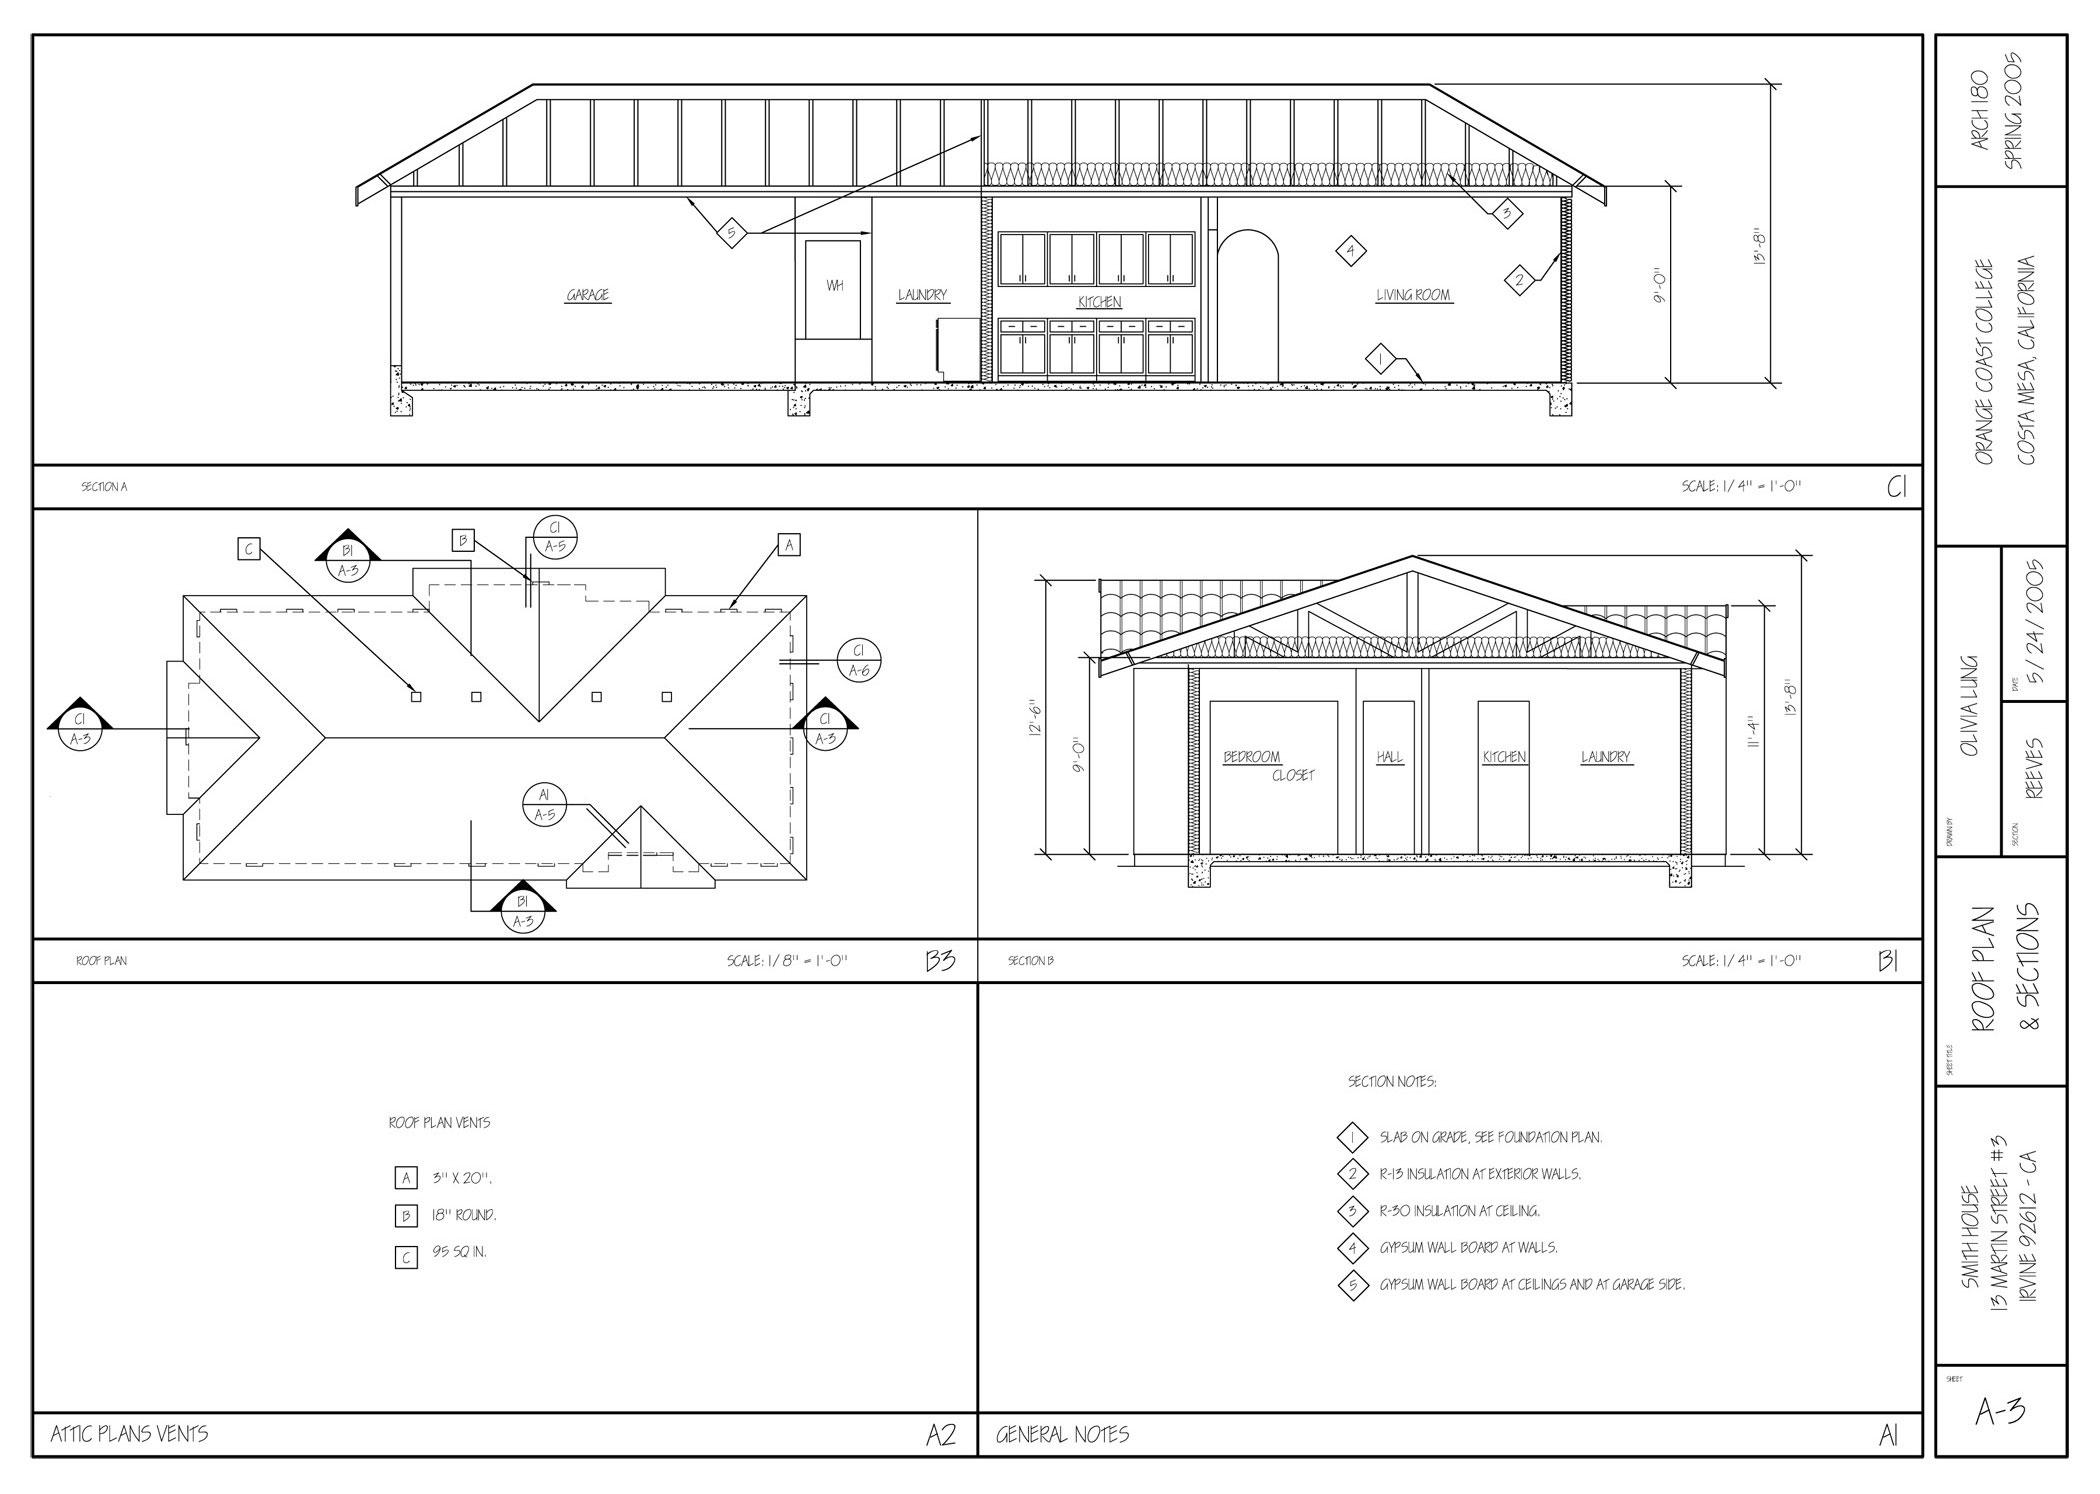 plans roof garden for garden shed corrugated roof and garden shed roof ...